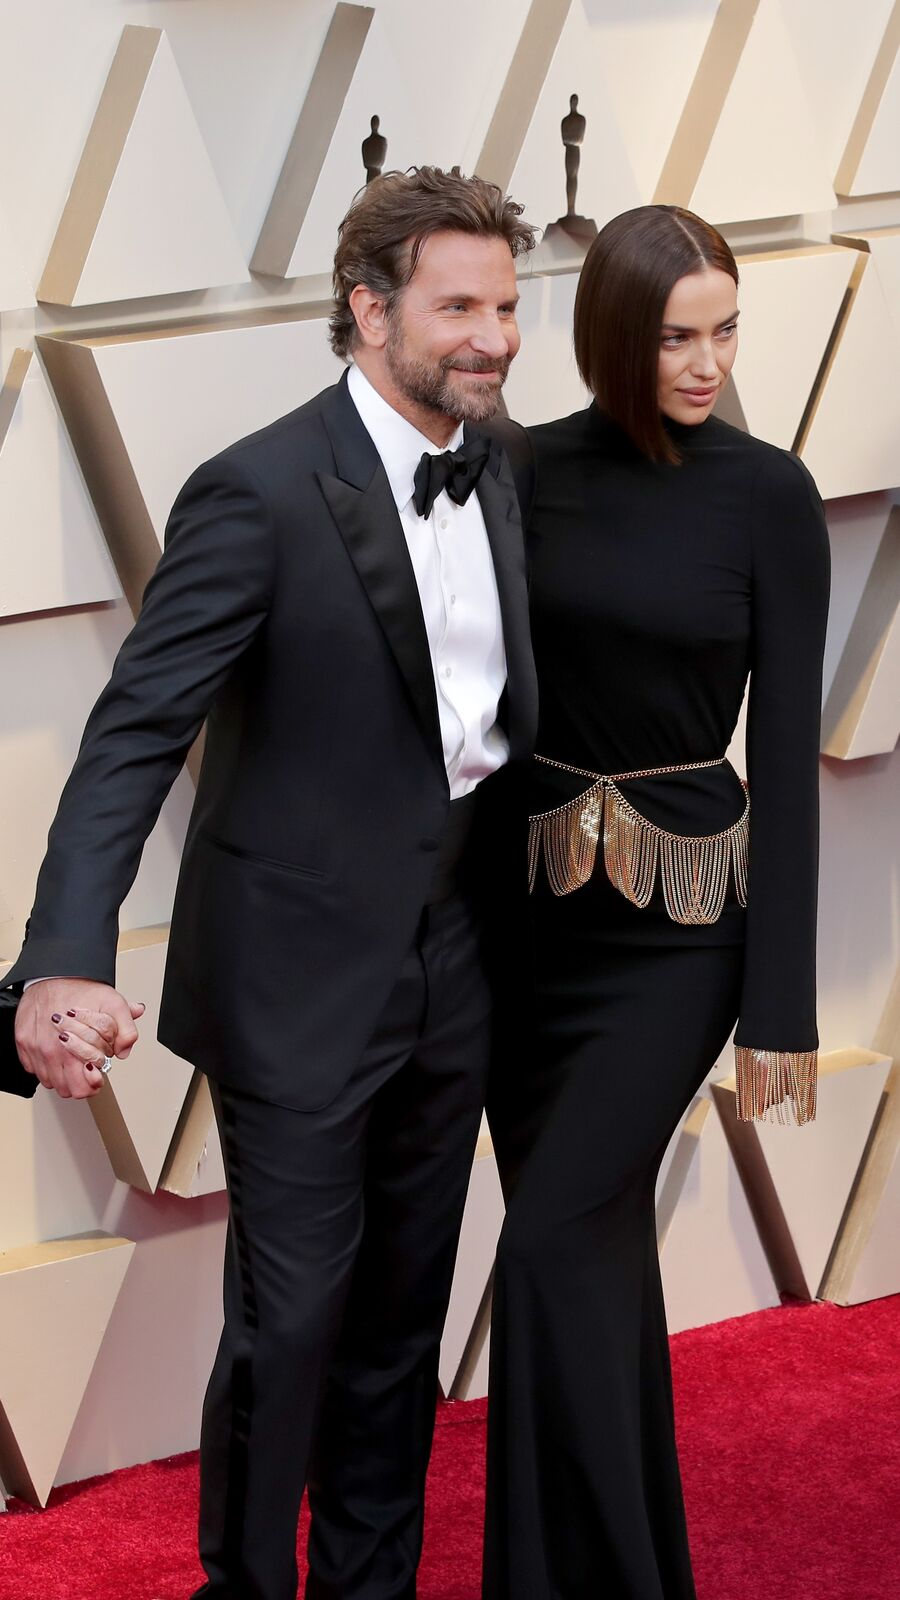 Bradley Cooper and Irina Shayk attends the 91st Annual Academy Awards at Hollywood and Highland on February 24, 2019 in Hollywood, California | Photo: Getty Images